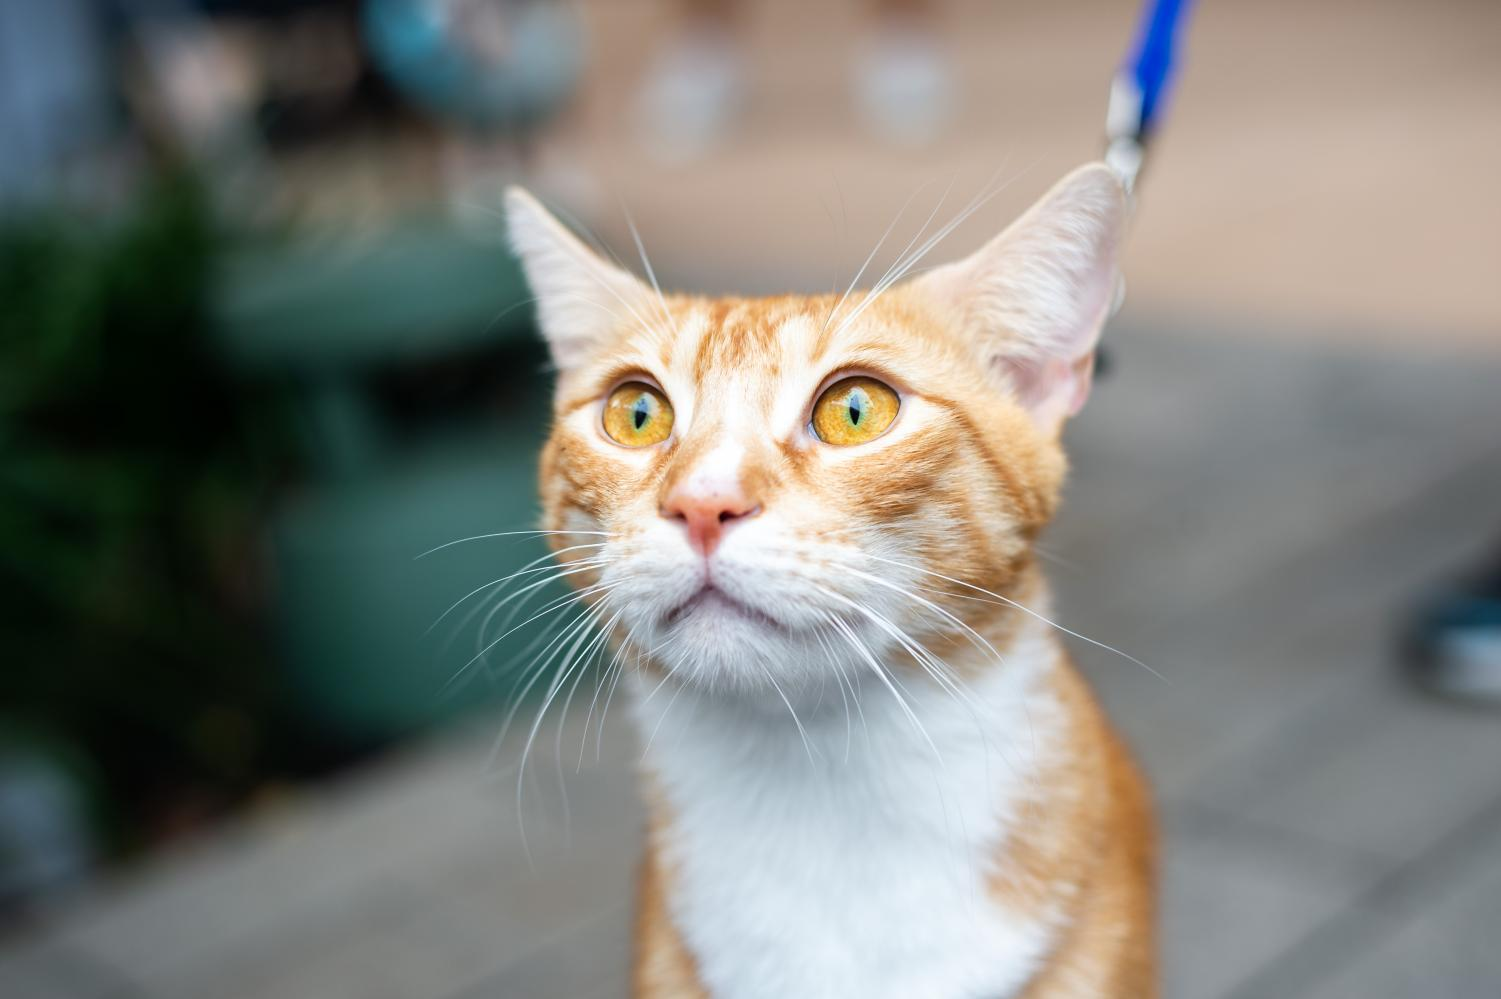 Calvin%2C+a+one-year-old+domestic+shorthair%2C+shows+off+his+unique+eyes.+%22He+loves+walking+on+a+leash%2C+and+he+isn%27t+bothered+by+dogs+unless+they+come+too+close+to+him%2C%22+his+owner+said.